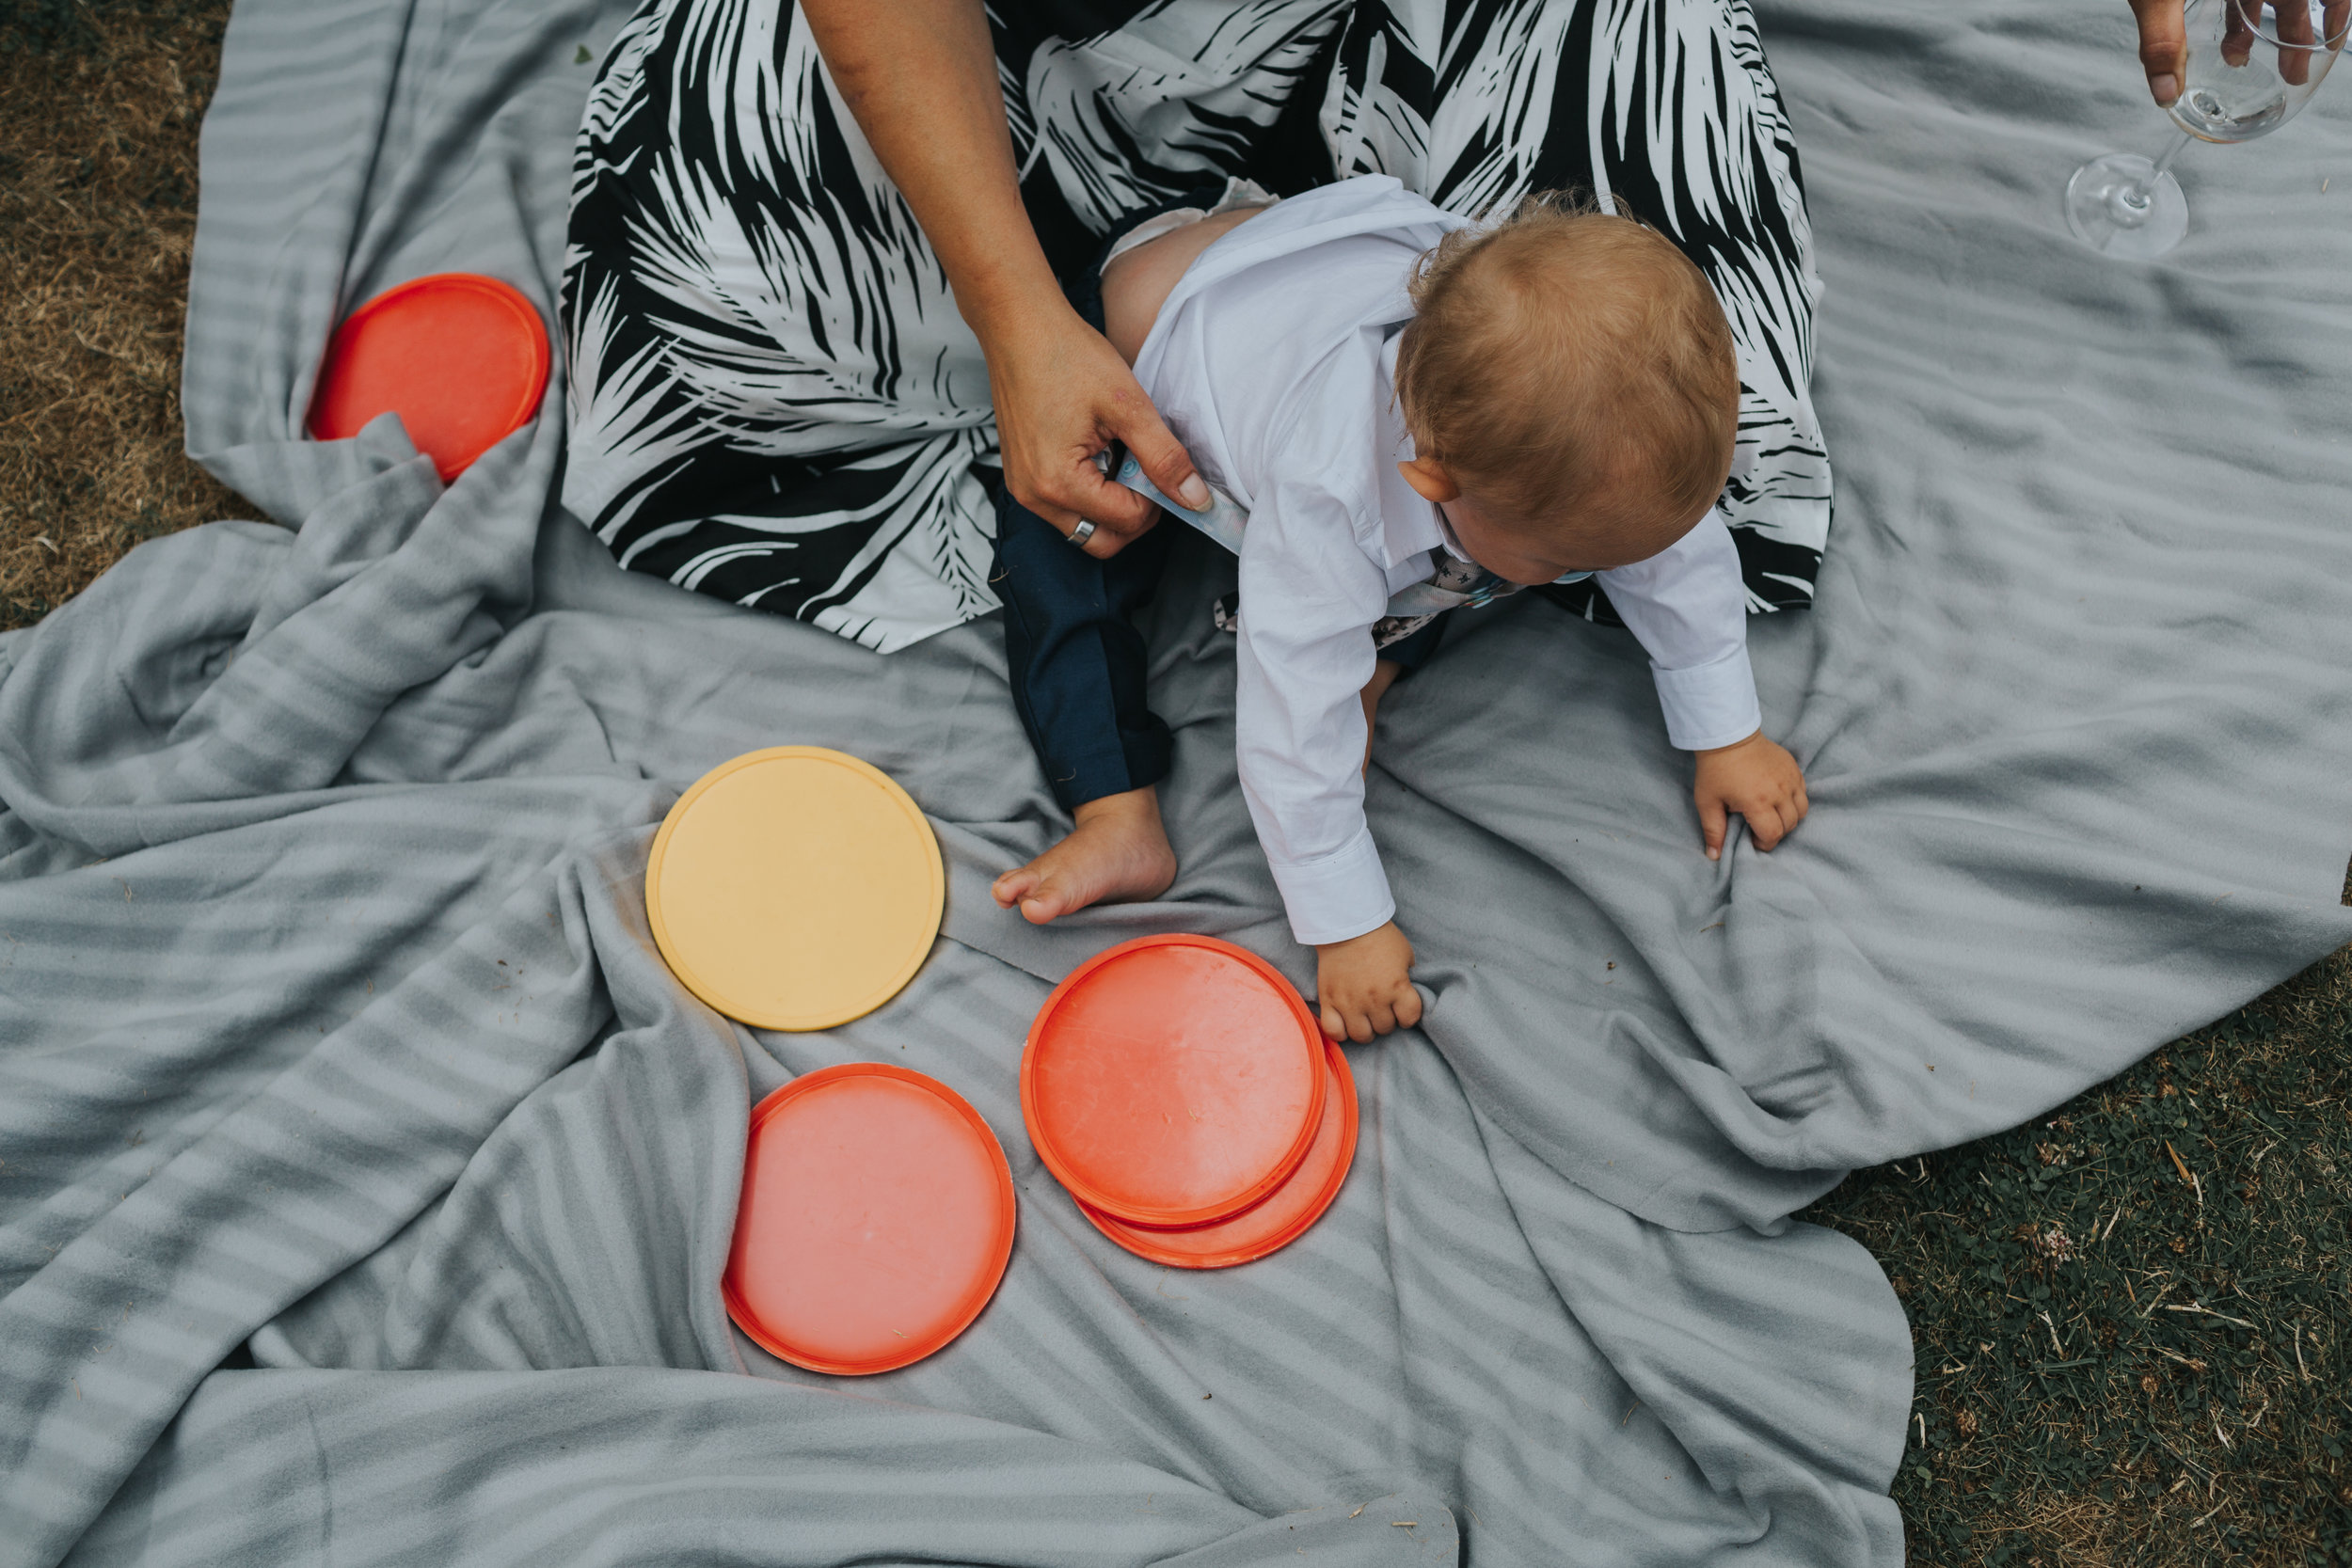 6 month old child photographed from above plays with connect 4 pieces on a grey blanket at an outdoor wedding in Manchester, UK.